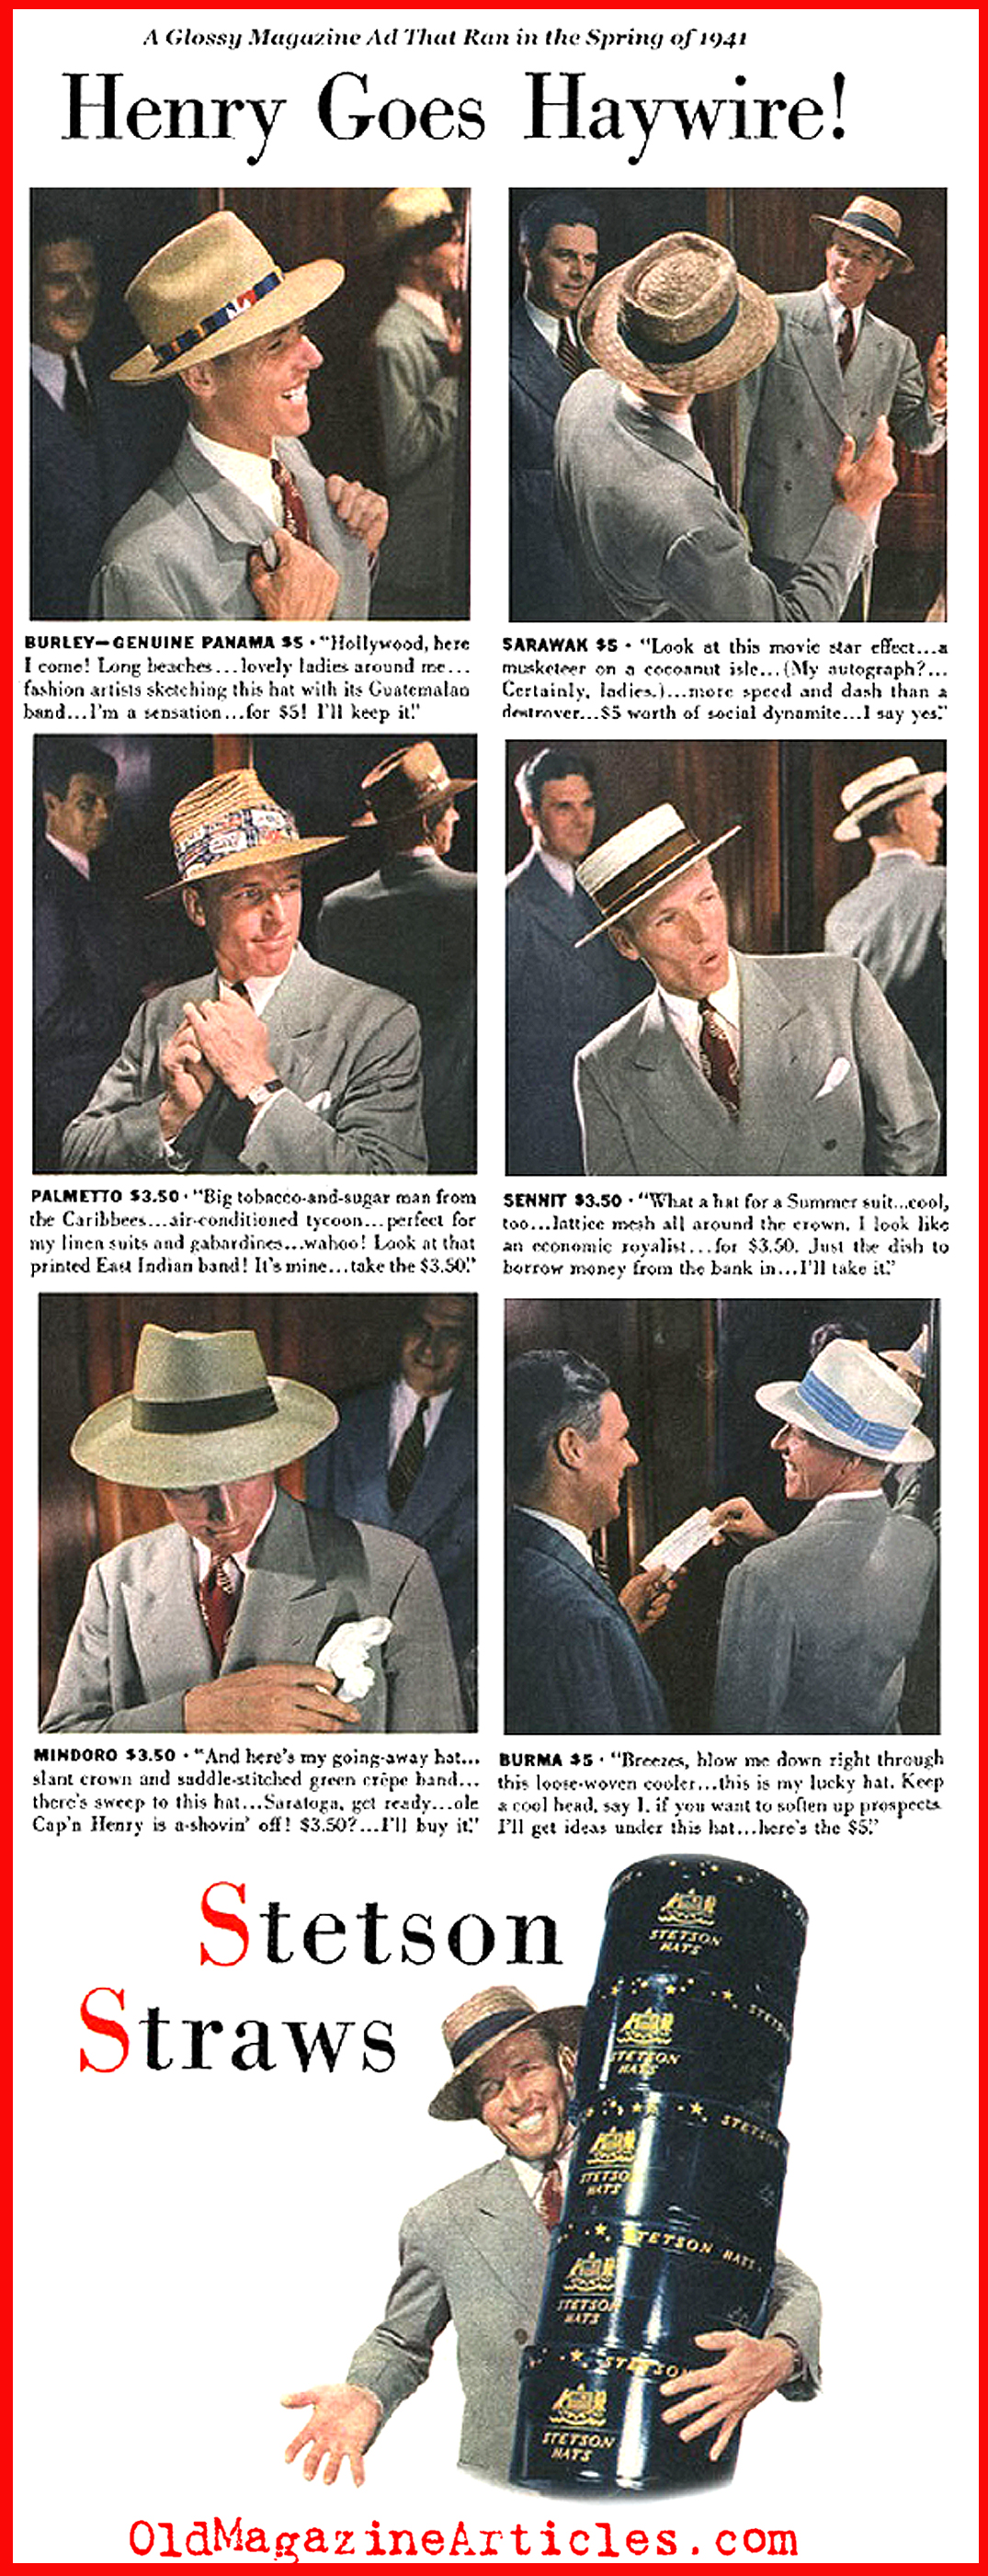 Men's Straw Hats from the Early Forties (From a 1941 Magazine Ad)